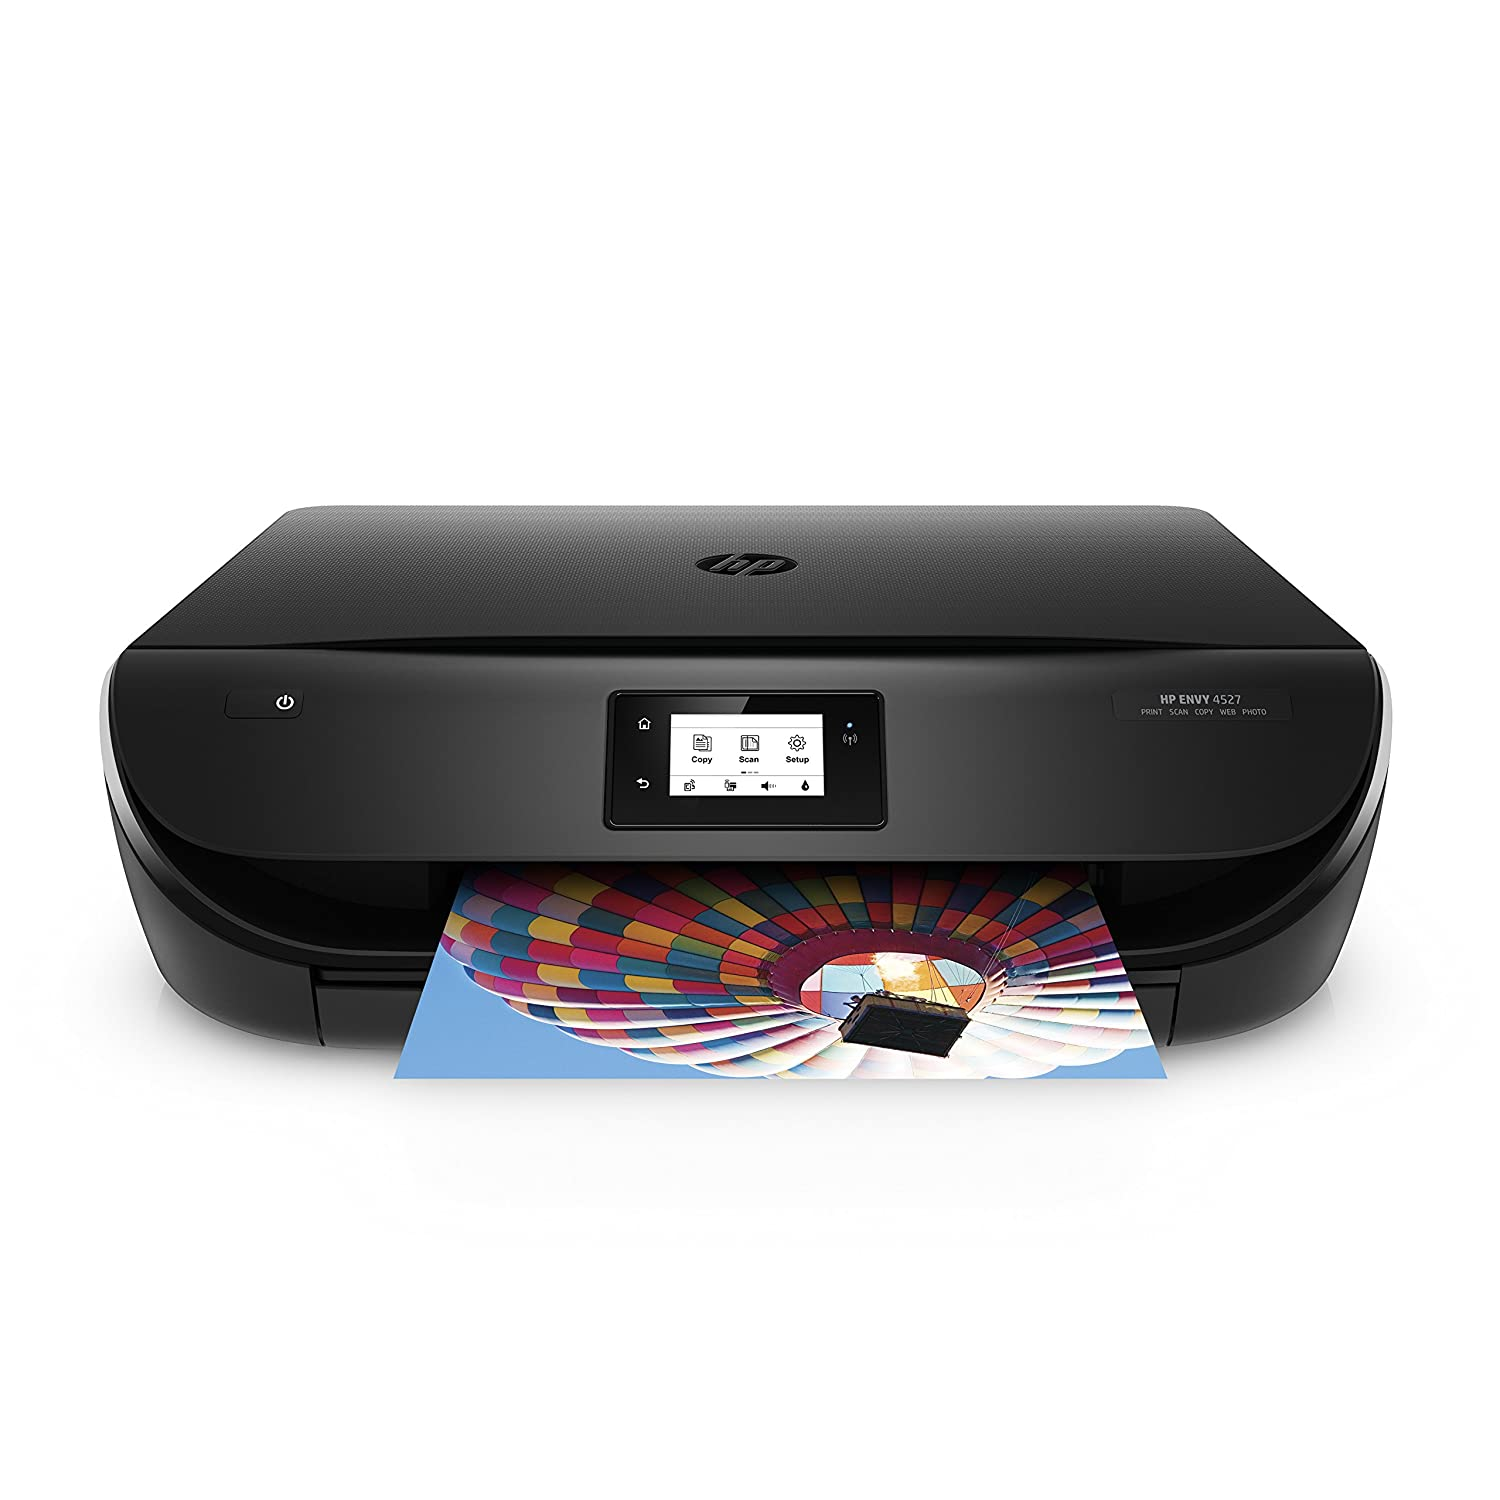 HP ENVY Photo 4527 Impresora multifunción All-in-One (Inyección de tinta A4, Wi-Fi, Imprime, Escanea, Copia, pantalla LCD, USB 2.0, 4ppm, 360 MHz), color negro